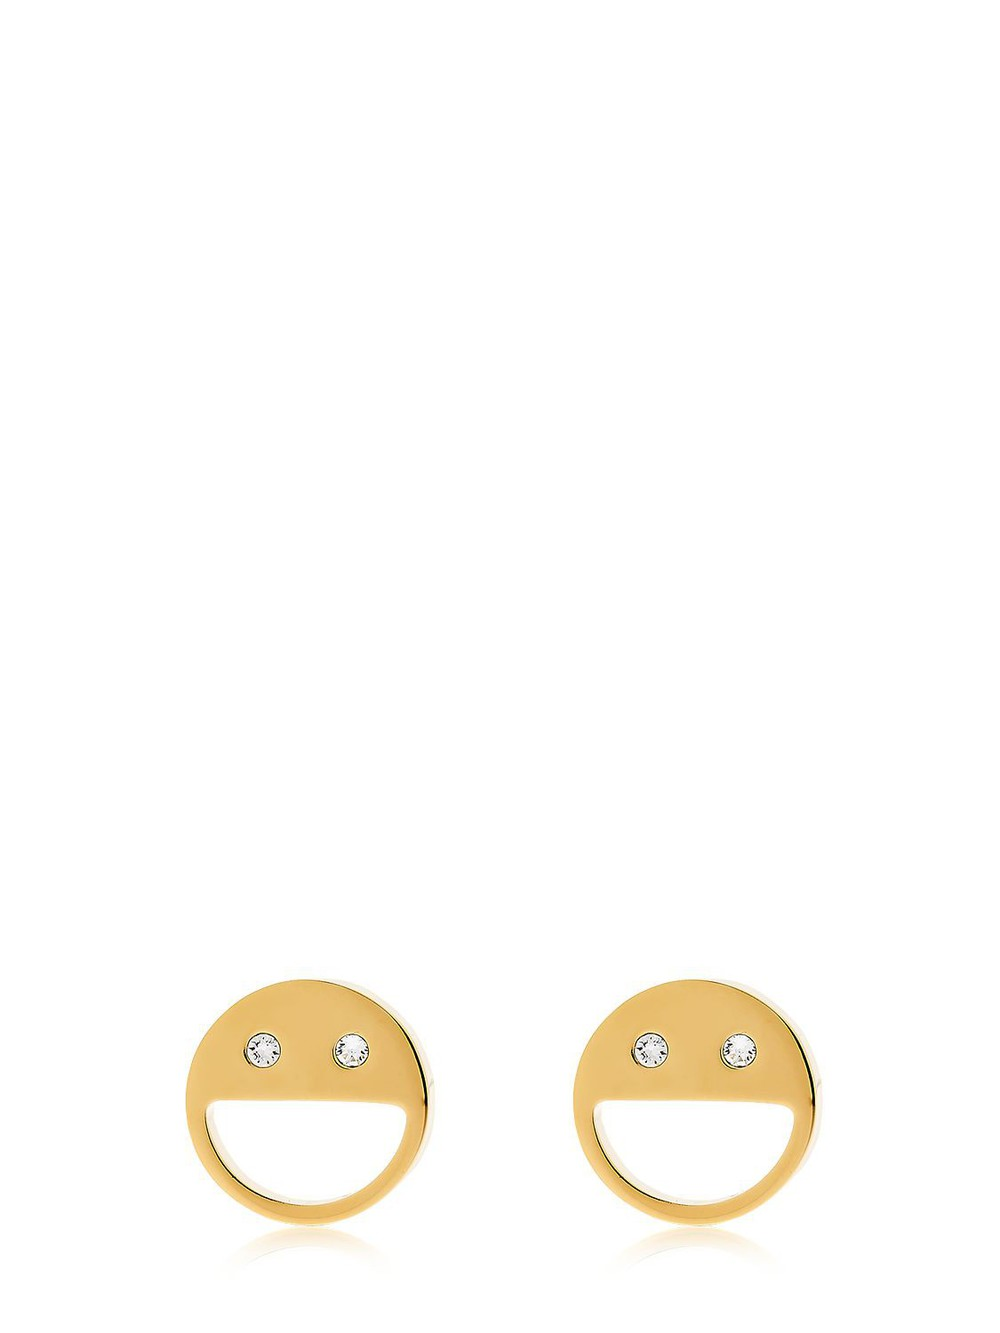 VITA FEDE Sorriso Earrings in gold